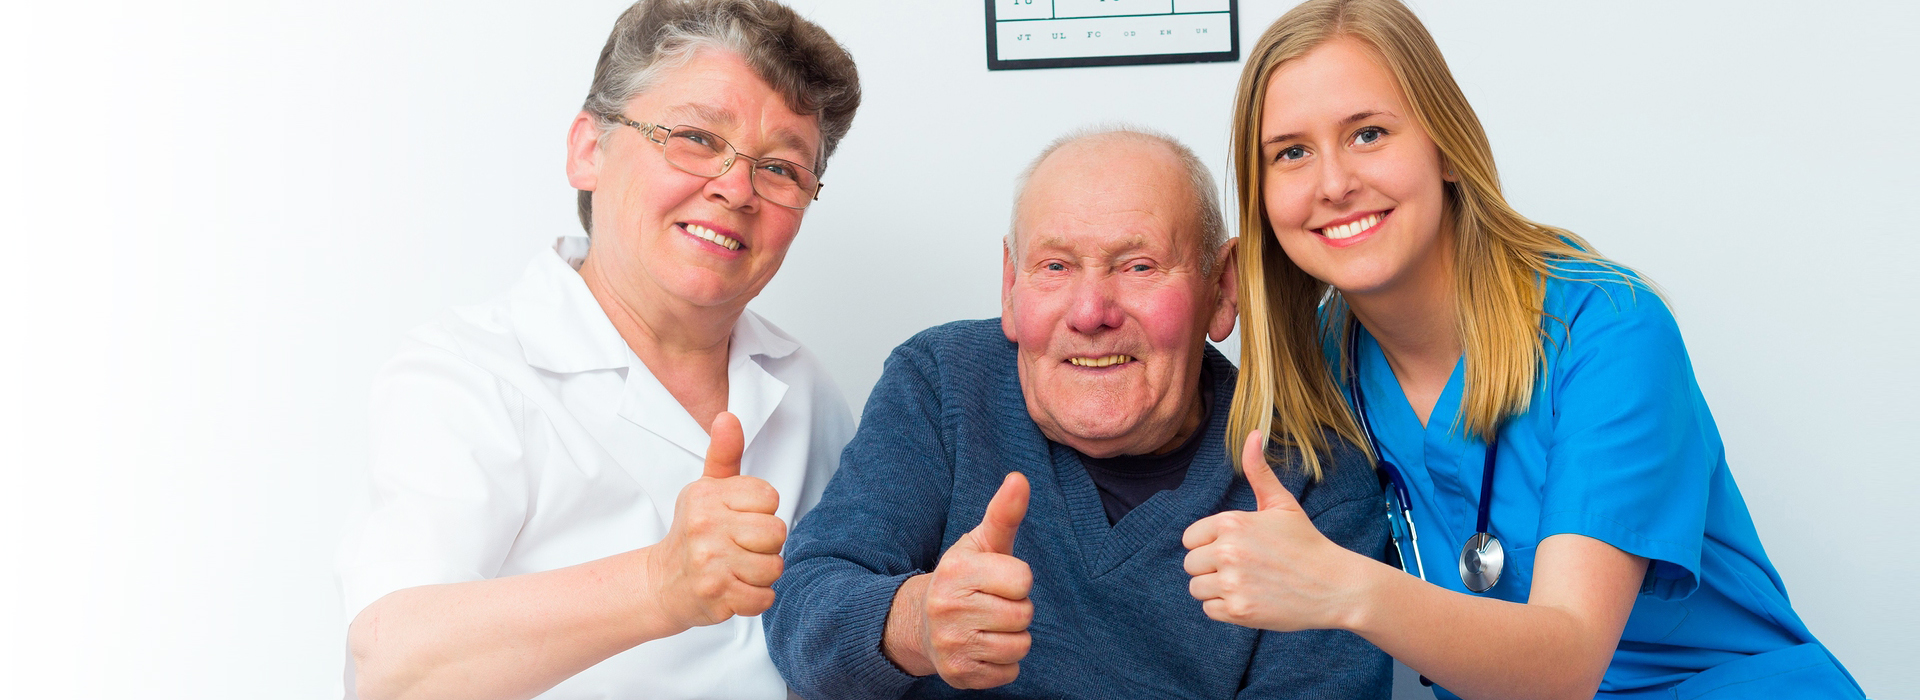 healthcare professionals and patient give a thumbs up